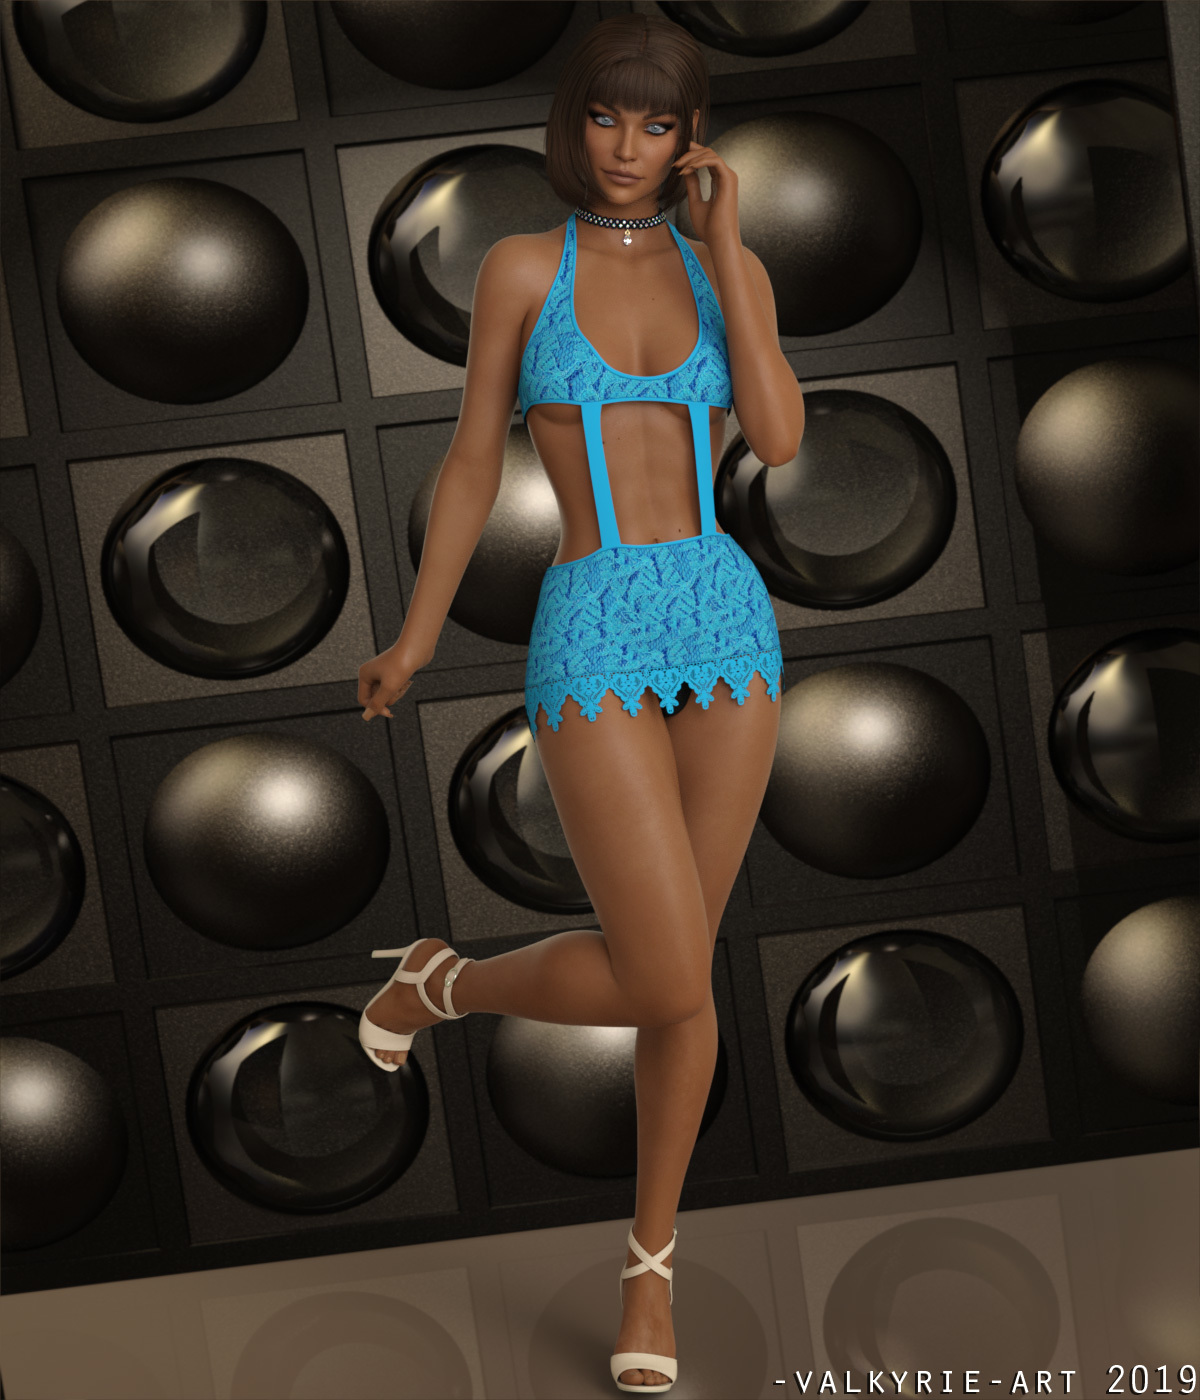 InStyle - dforce Exhibition IV G8F by -Valkyrie-